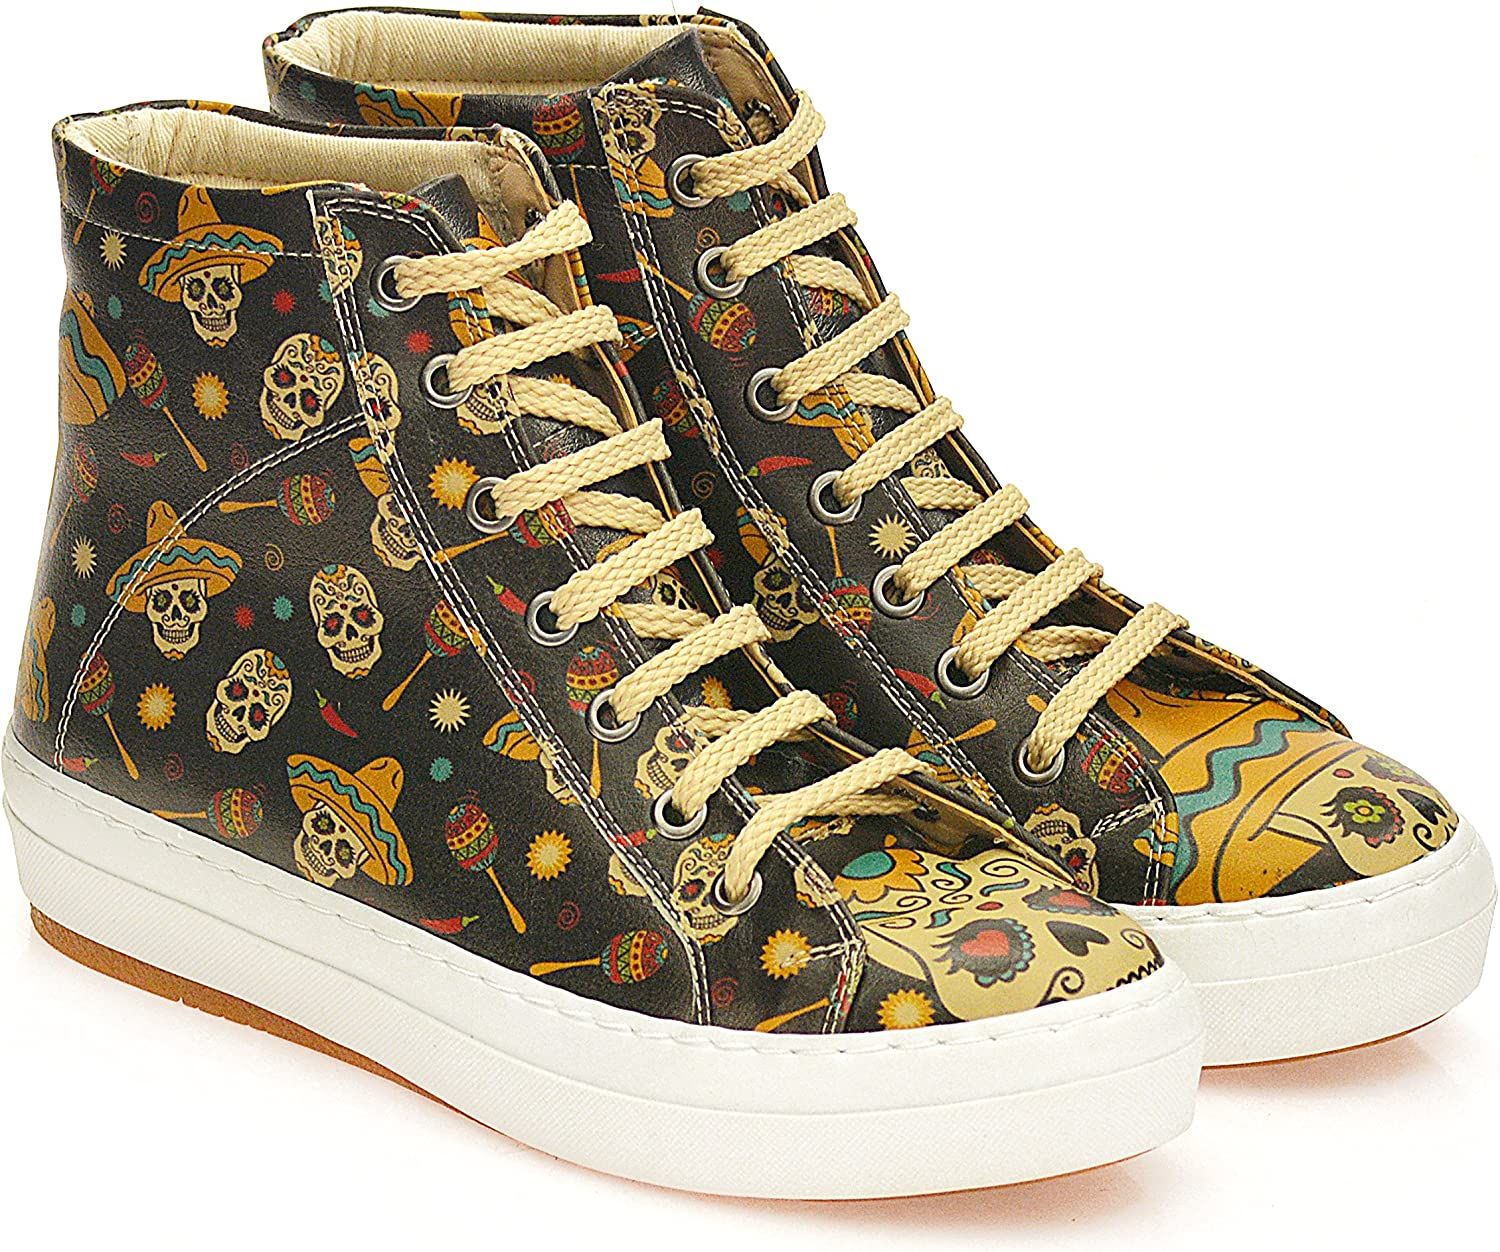 GOBY Women's shoes ''Sugar Skull High Top Sneakers Boot'' CW2018